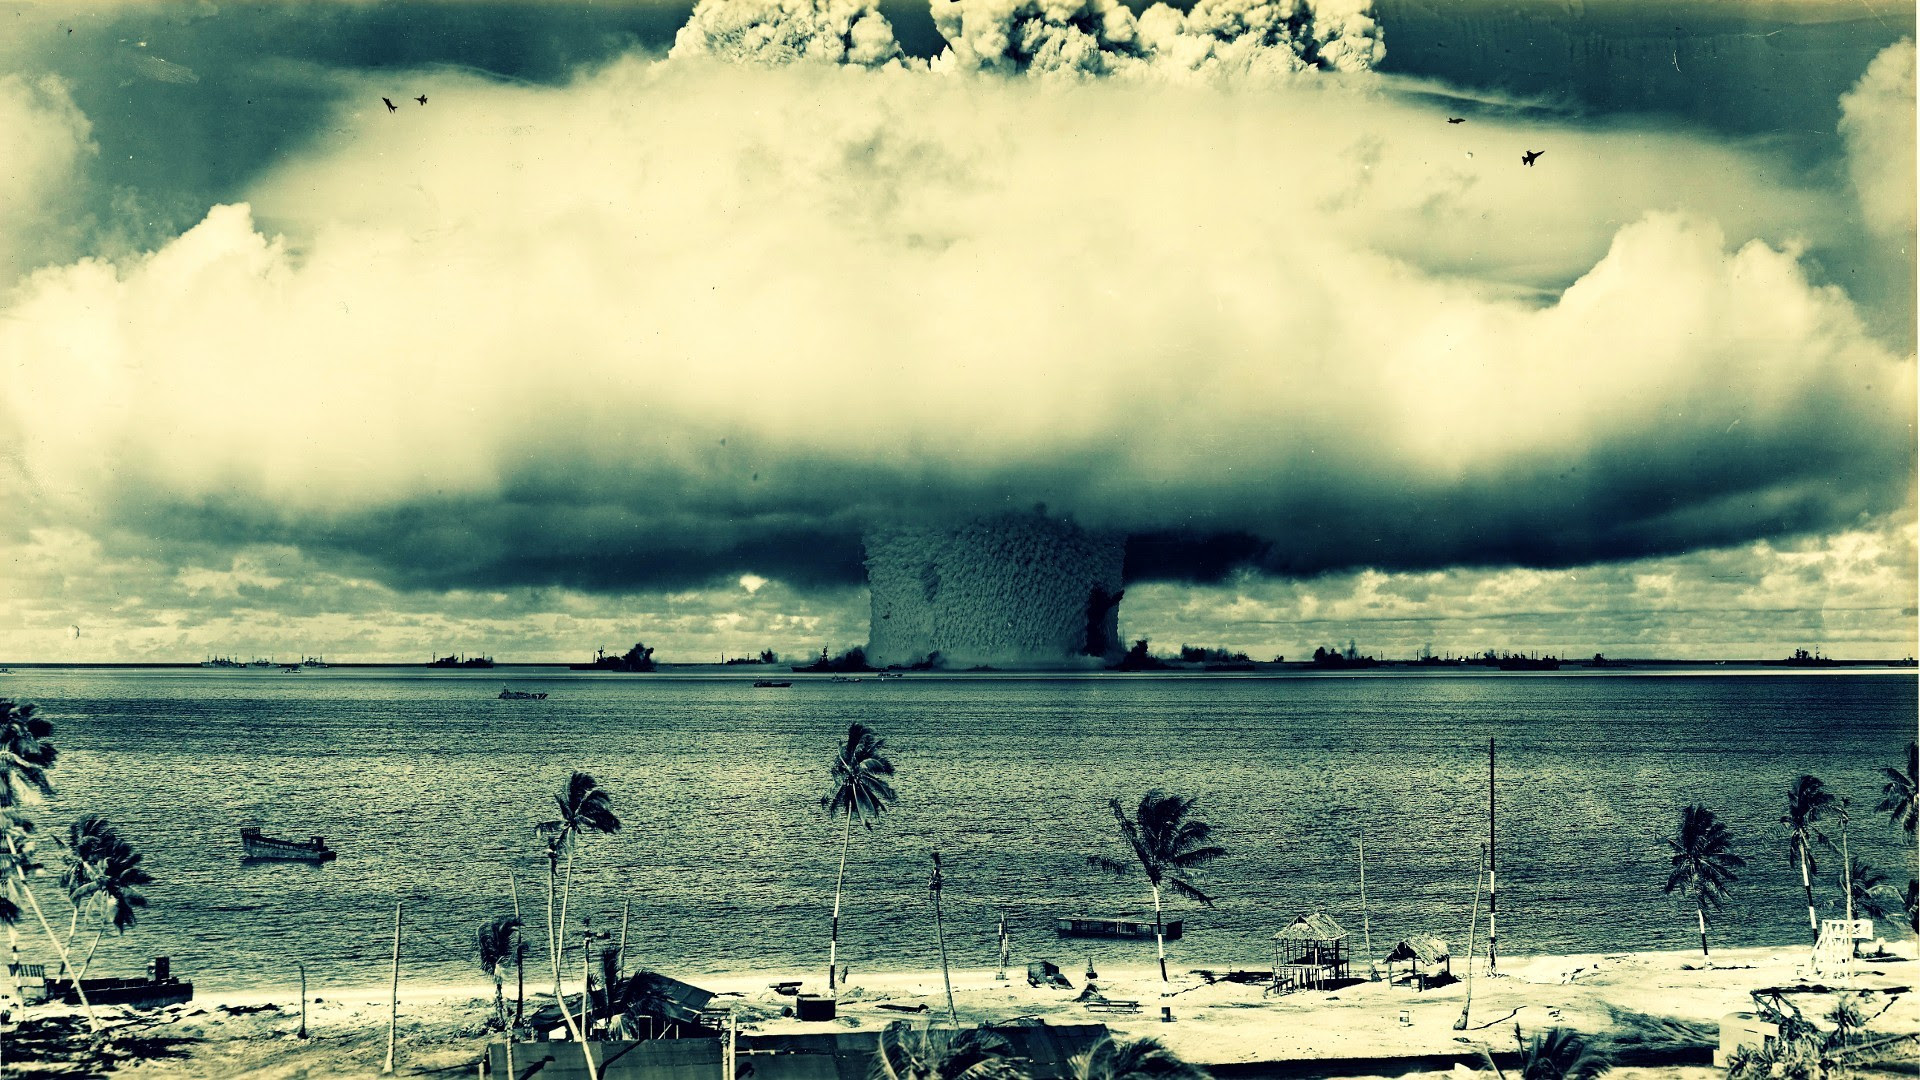 http://thepolicytensor.files.wordpress.com/2013/05/bomb-explosion-mushroom-cloud.jpg